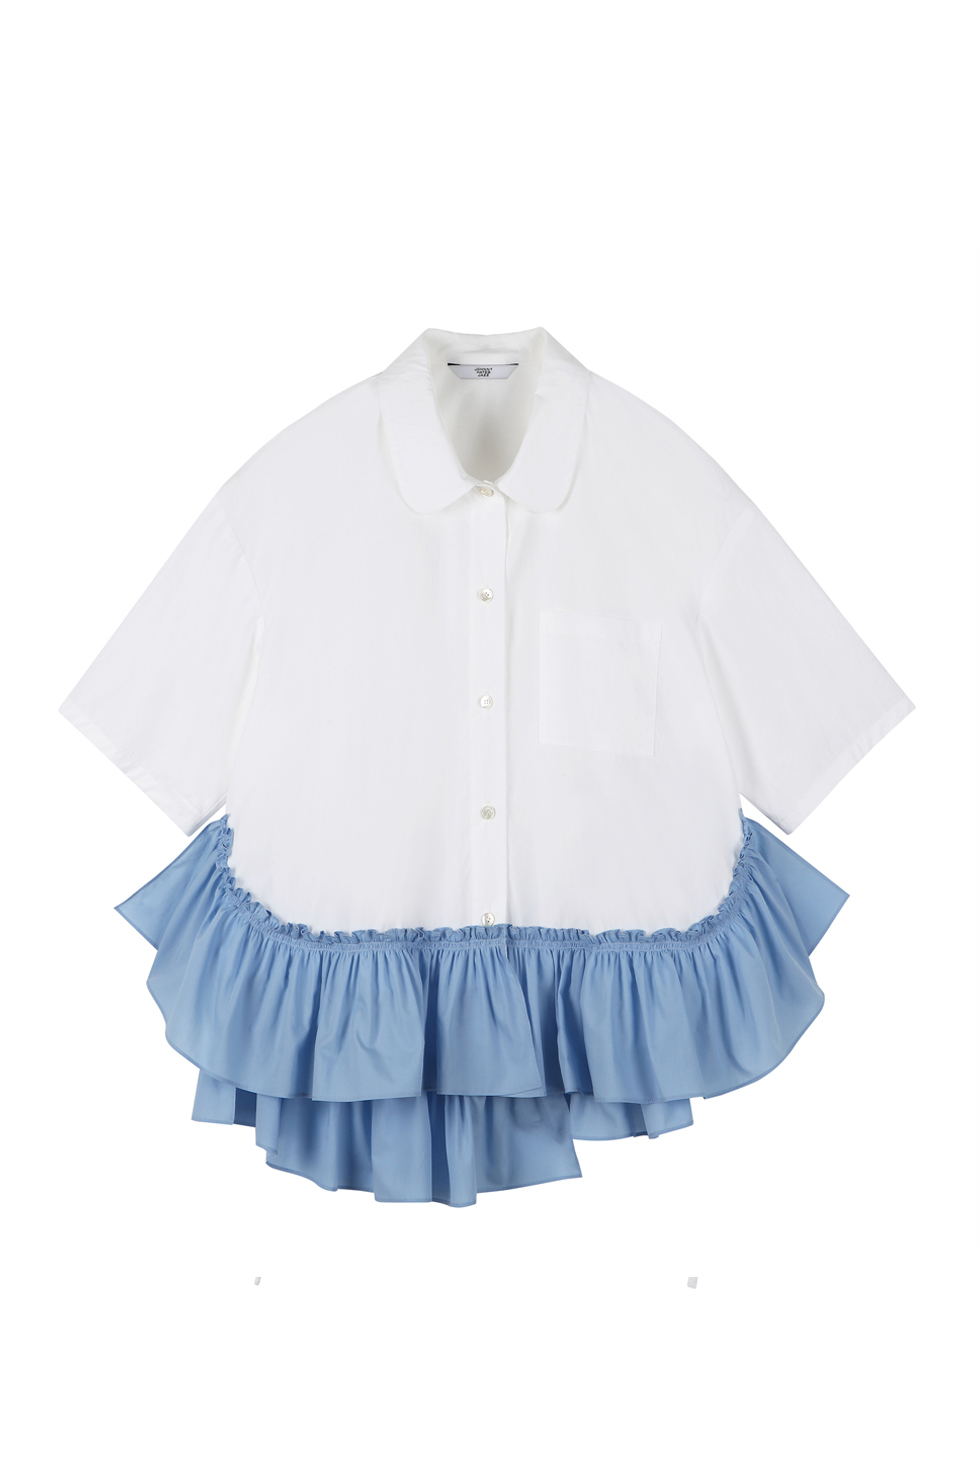 OVERSIZED RUFFLE SHIRTS - BLUE